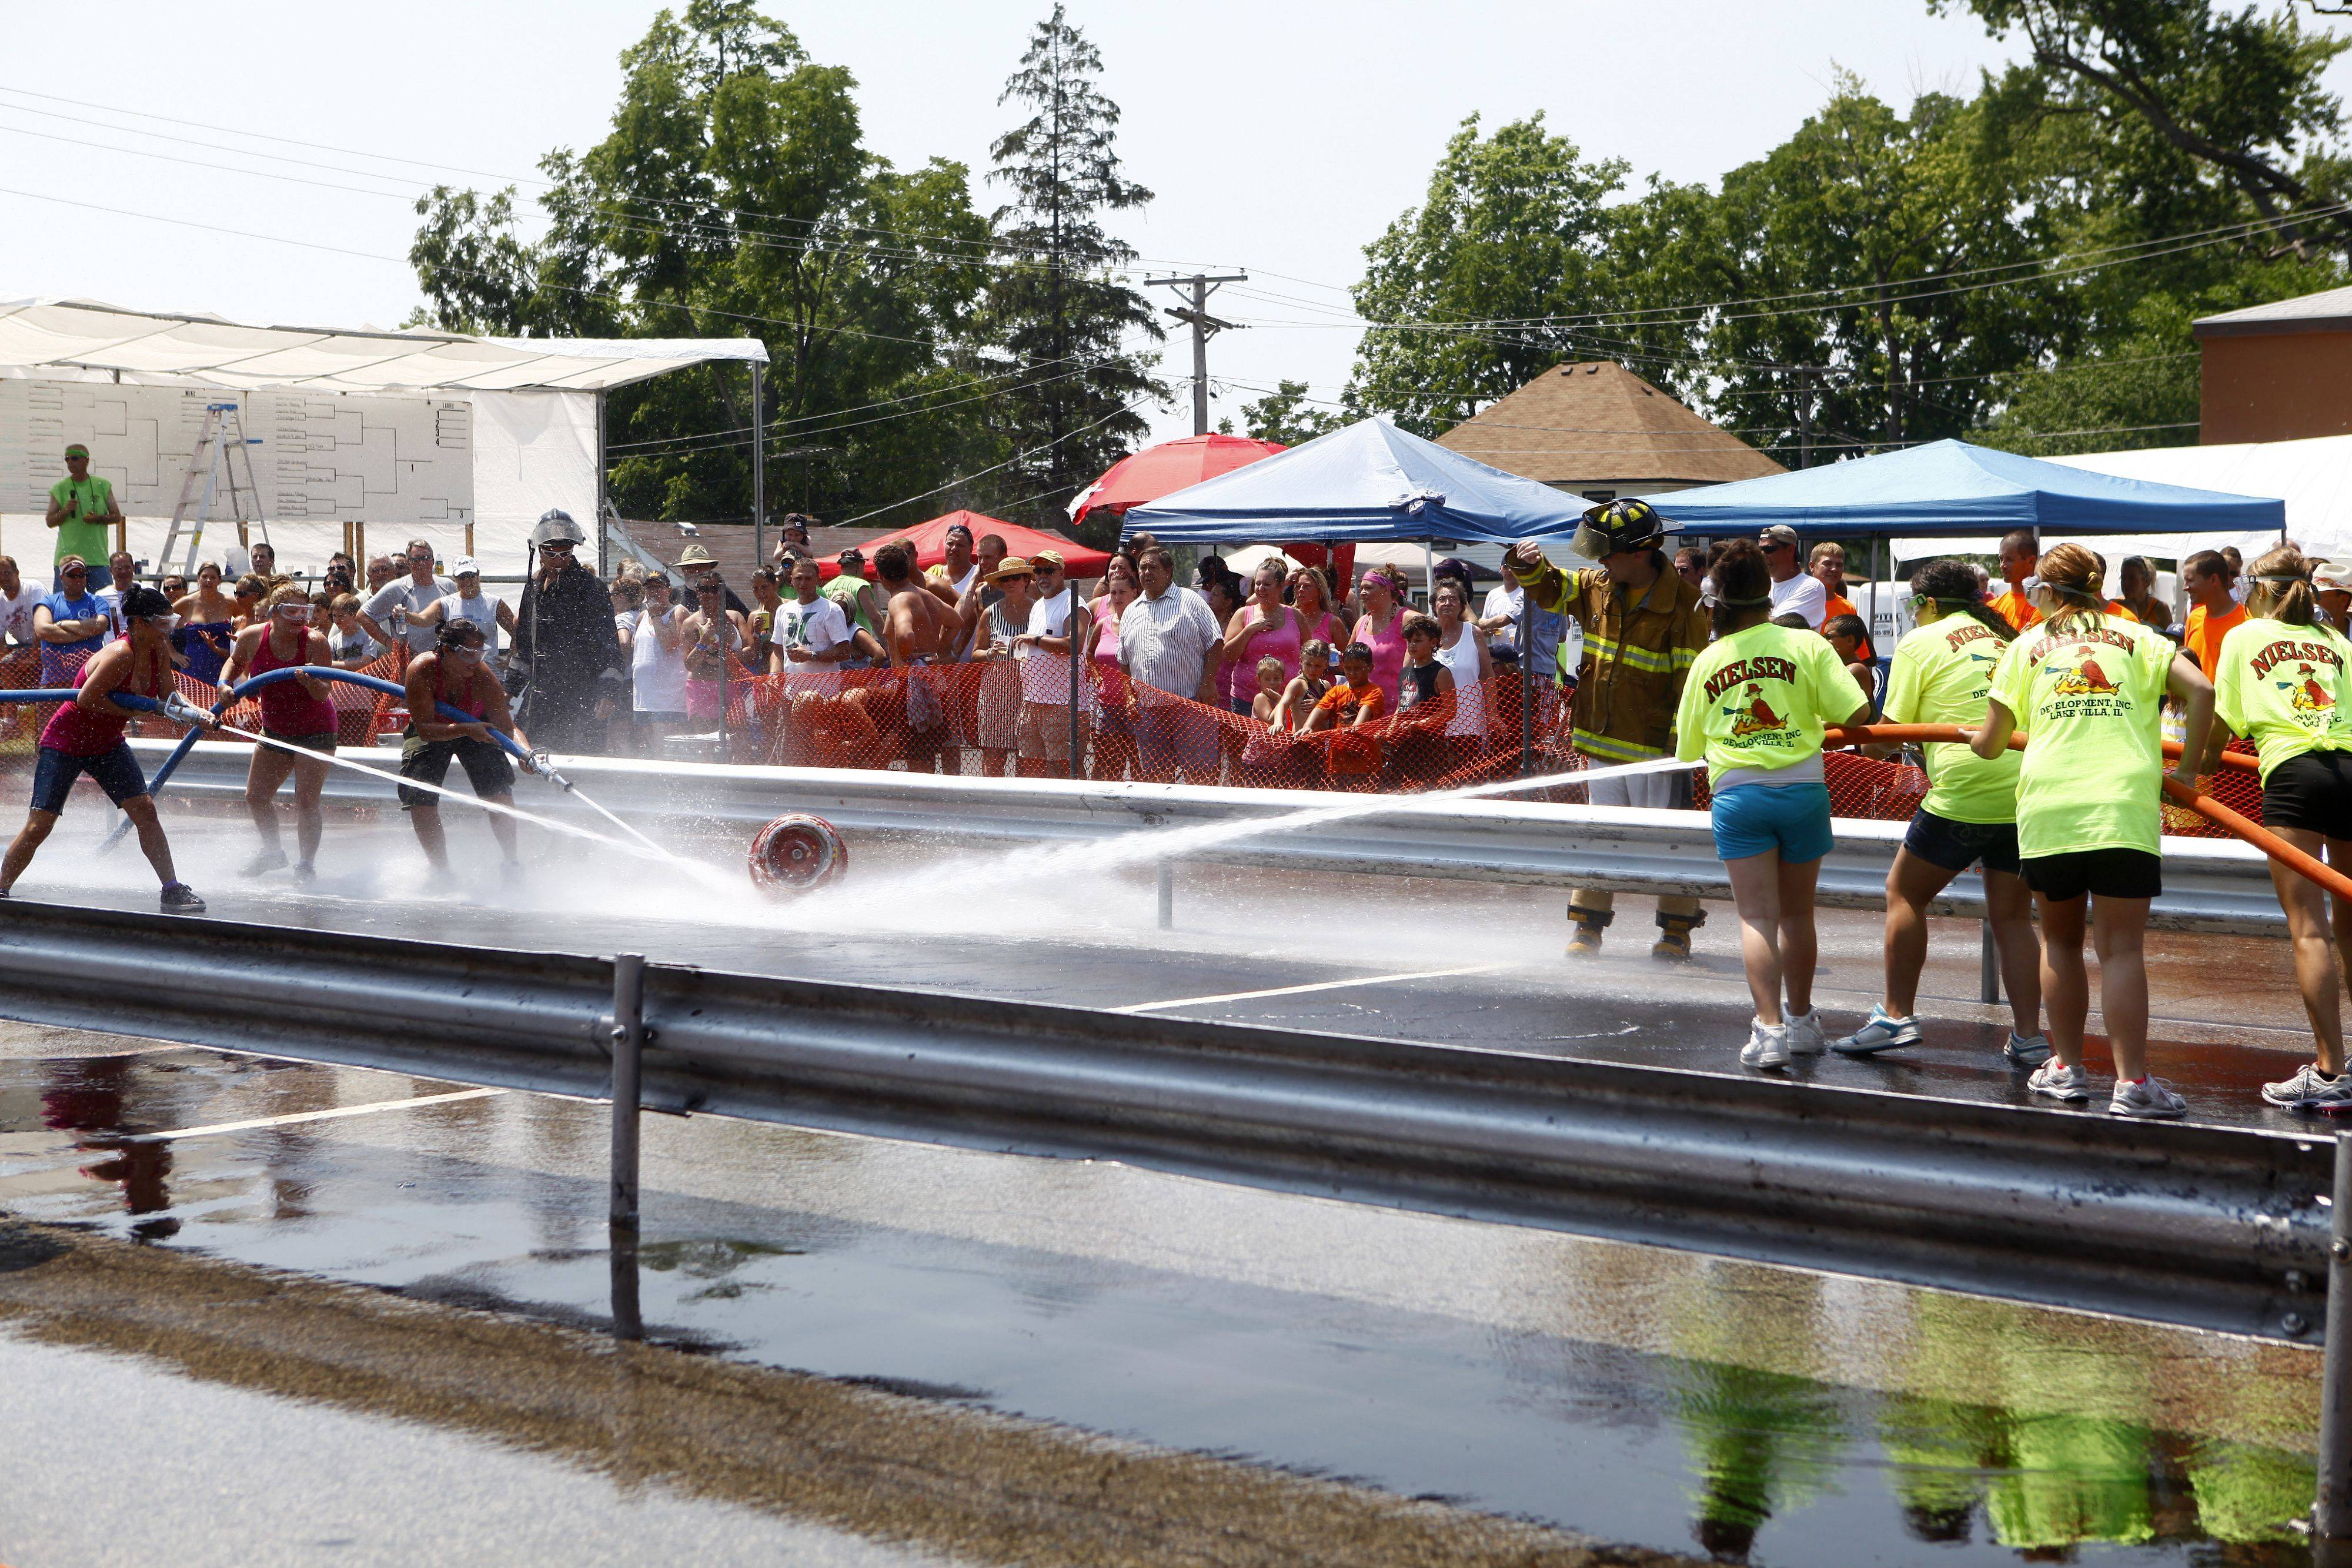 Two teams compete in a water fight during the annual Fireman's festival Sunday afternoon in Fox Lake. The festival went on all day with food and water fights.